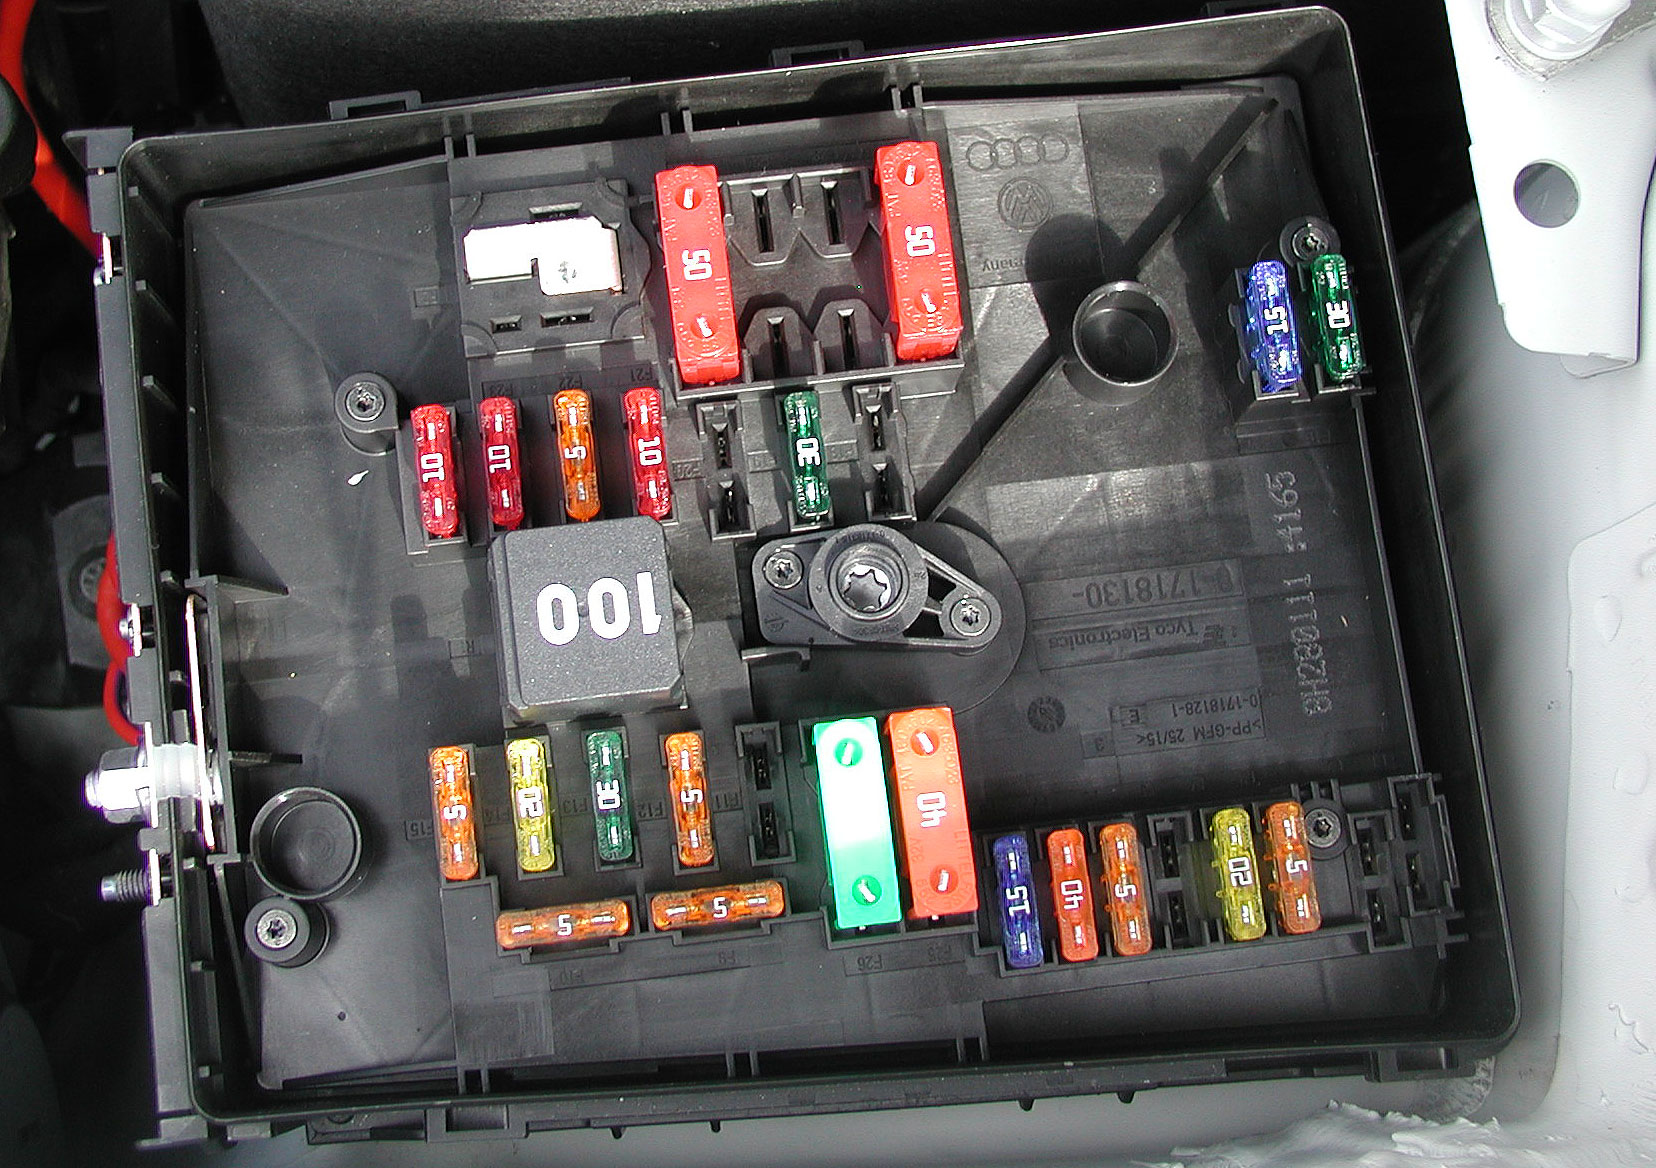 1AB Volkswagen Jetta Fuse Box Diagram Wiring Schematic ... on jetta cigarette lighter fuse, jetta alternator, jetta trailing arm, jetta firing order, jetta console, jetta sportwagen 2011 fuse diagram, jetta motor mount, jetta catalytic converter, jetta fuse card, jetta door panel, jetta slave cylinder, jetta bumper guard, jetta shifter cable, jetta loaded beam axle, jetta cam sensor, jetta battery, jetta hood release, jetta sway bar, jetta relay box, jetta fuse tool,